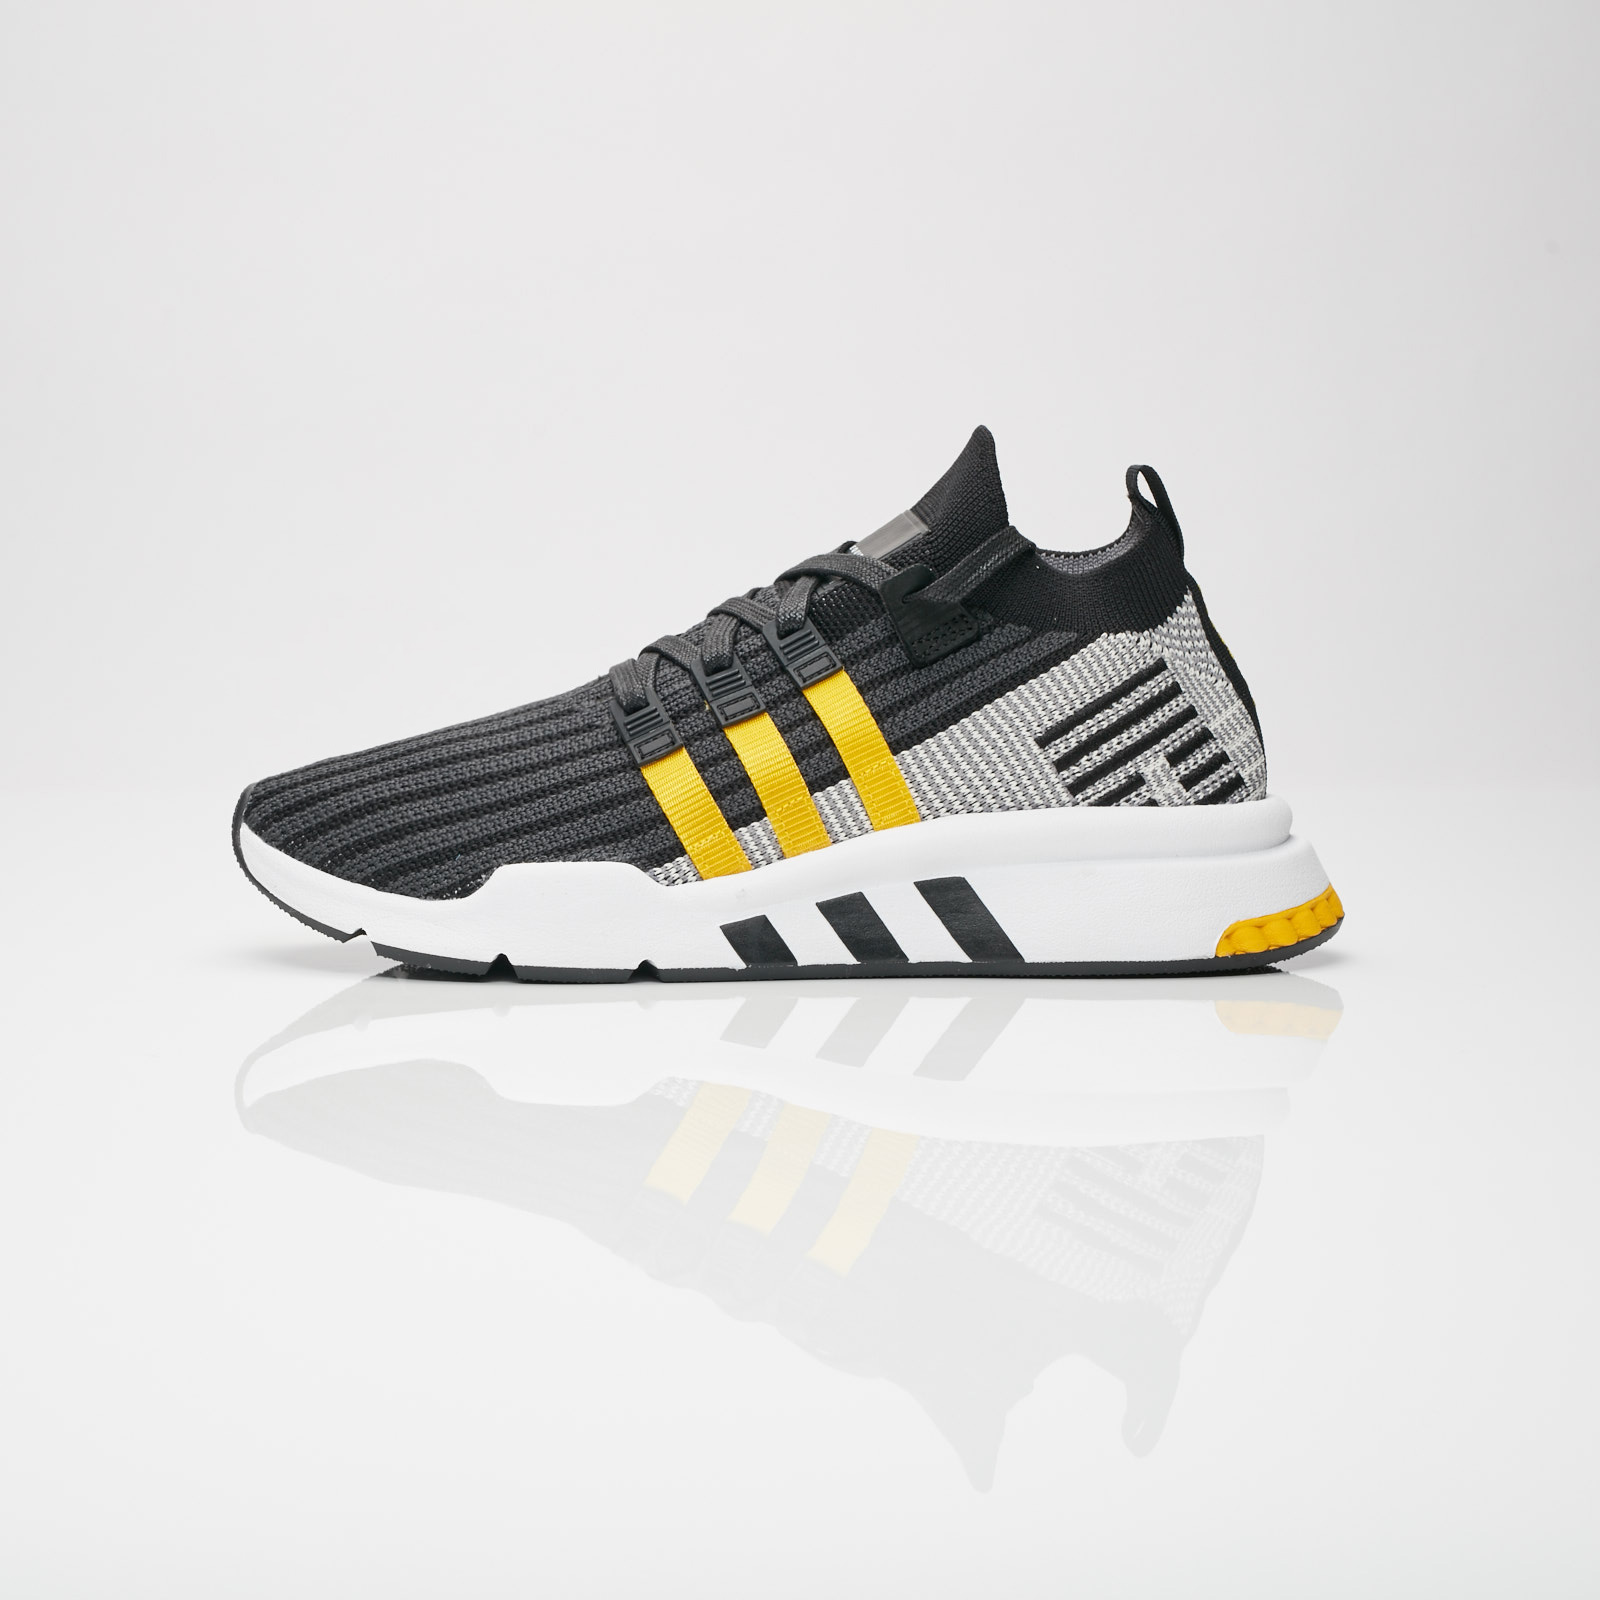 super popular c6f93 86334 adidas EQT Support Mid ADV PK - Cq2999 - Sneakersnstuff ...